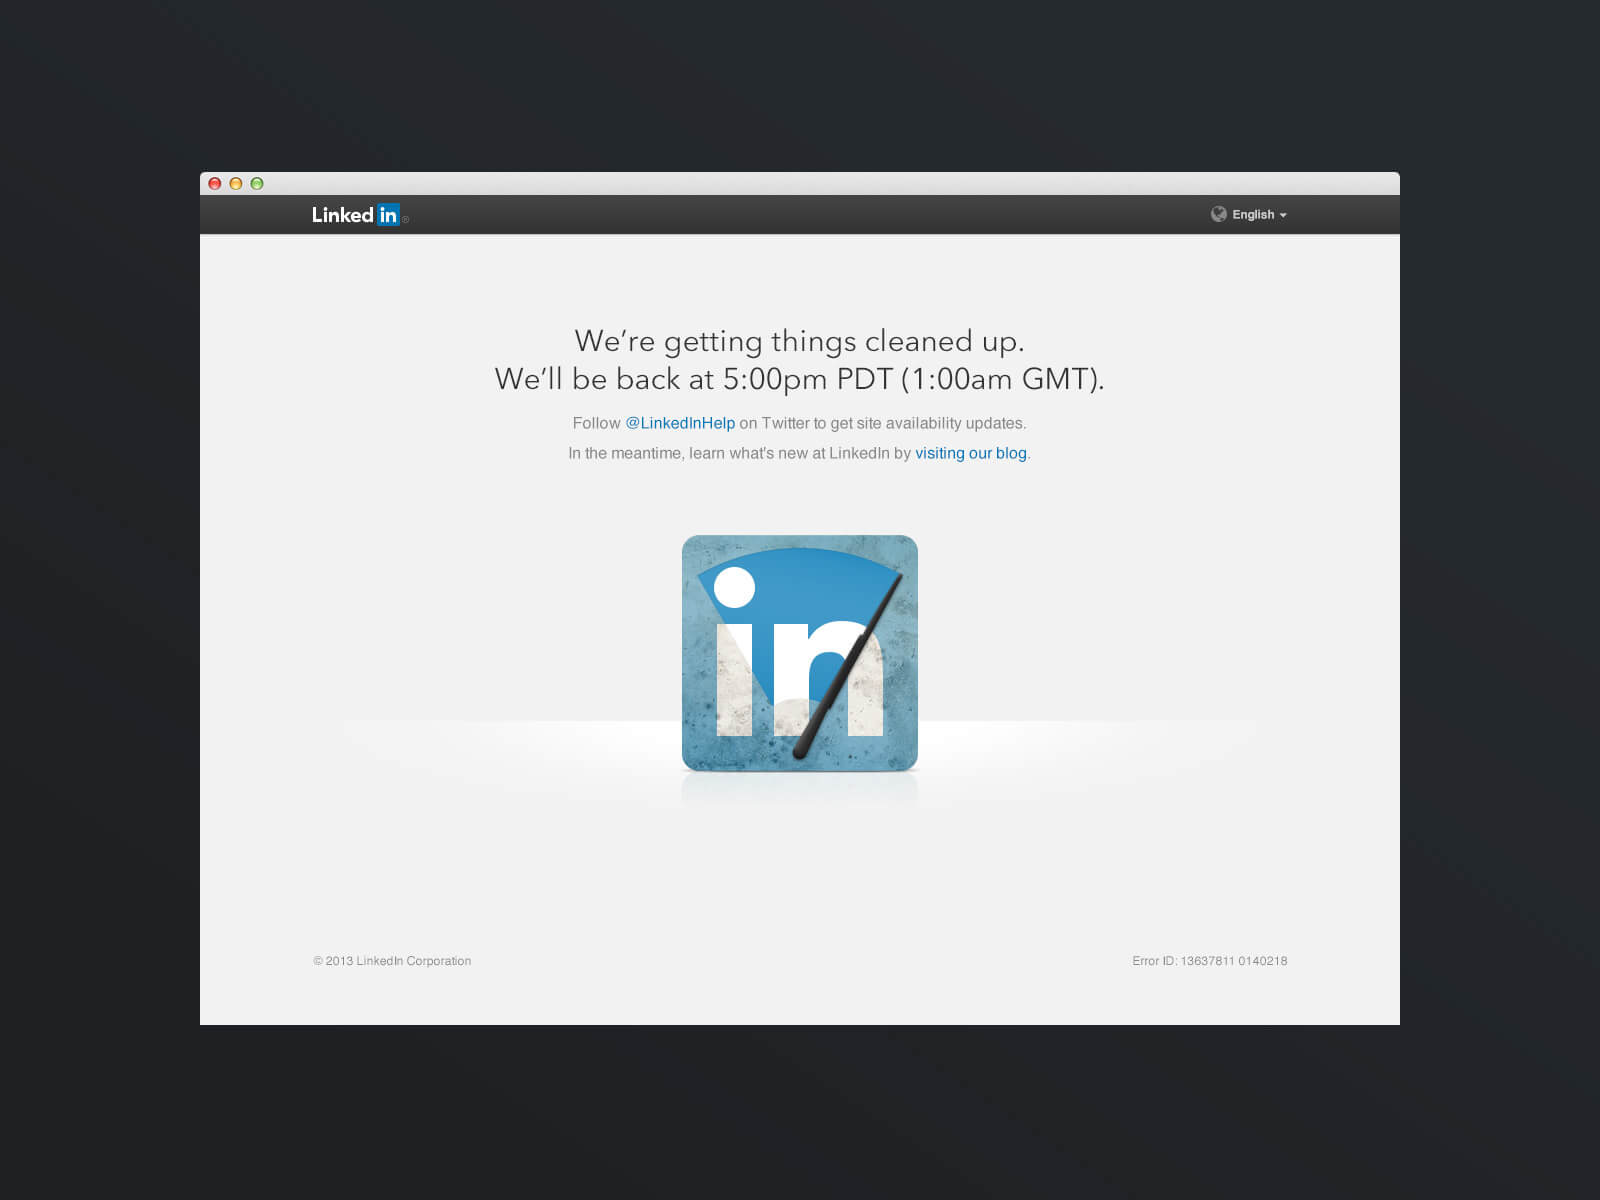 Tech support tips: lead by LinkedIn's example